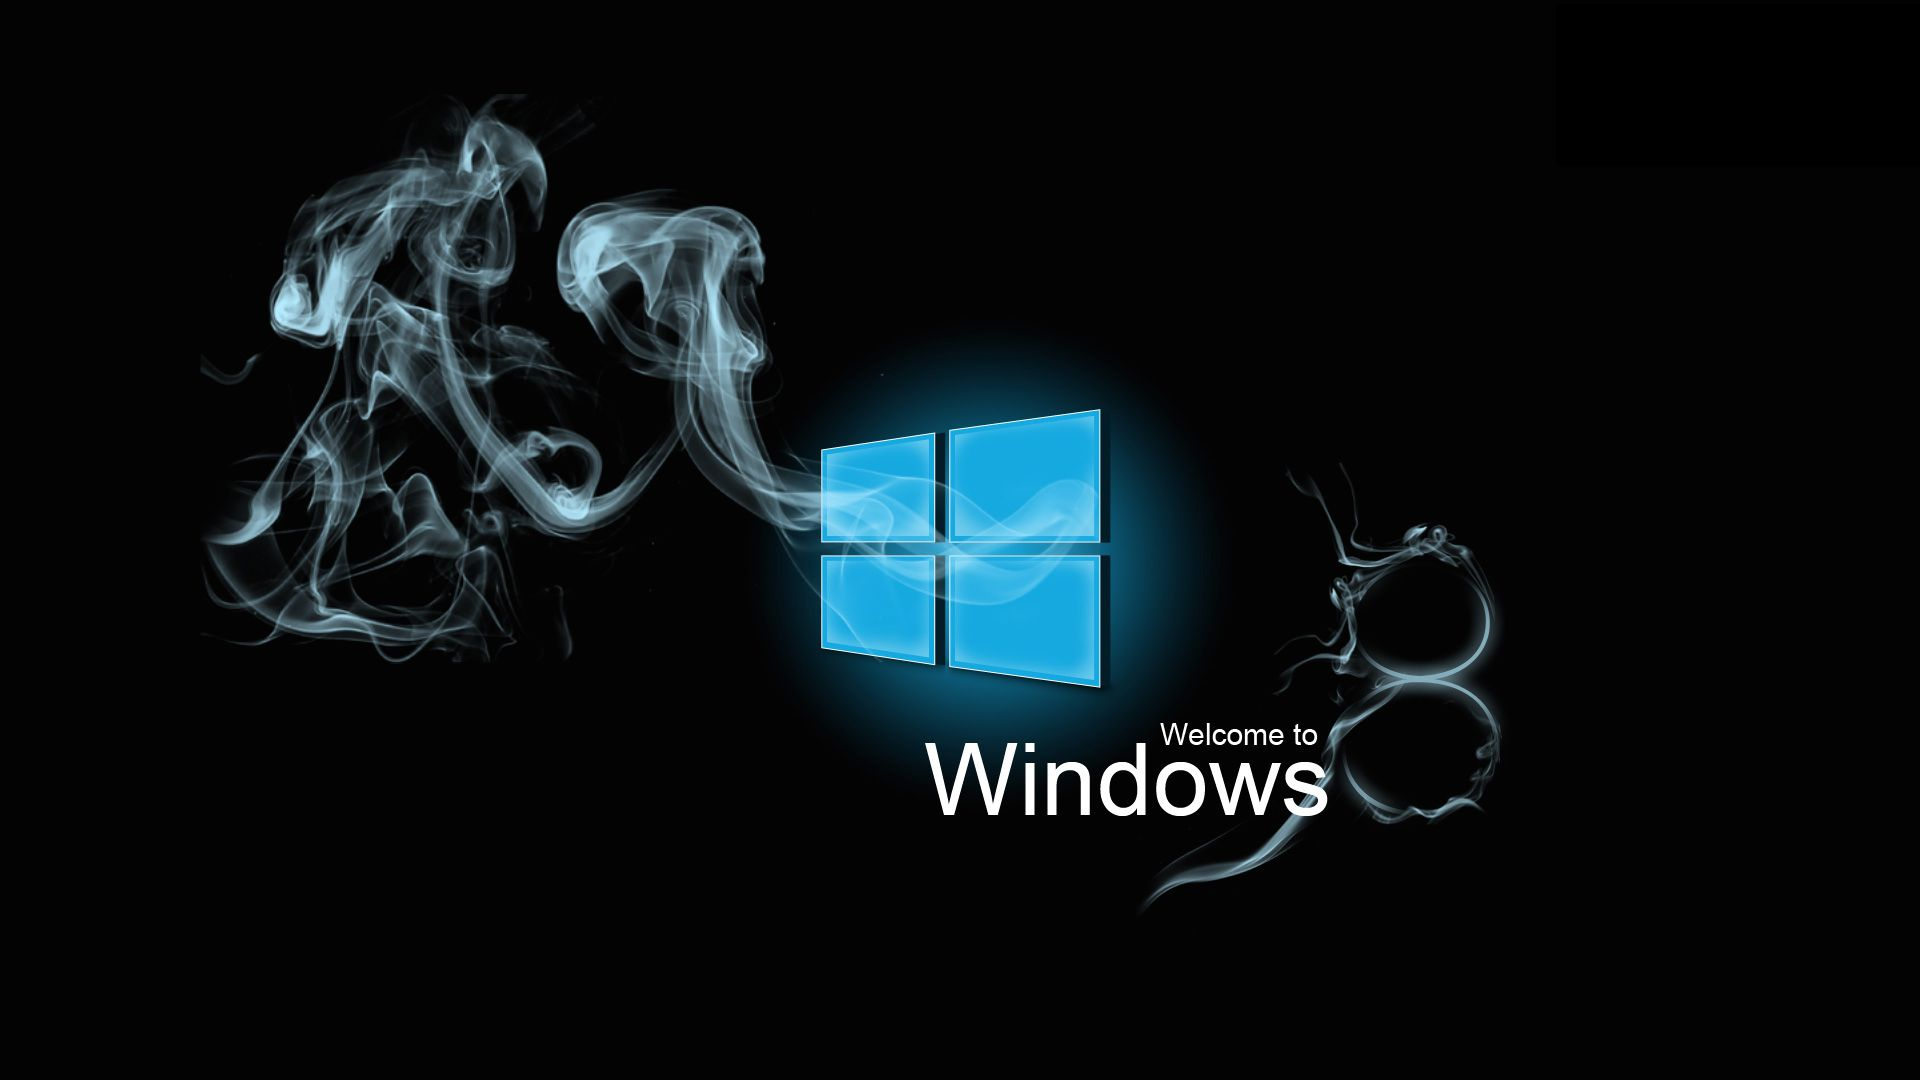 Welcome To Windows 8 Wallpaper Unofficial Windows8 Concept Artwork Background Windows Wallpaper Live Wallpapers Wallpaper Backgrounds